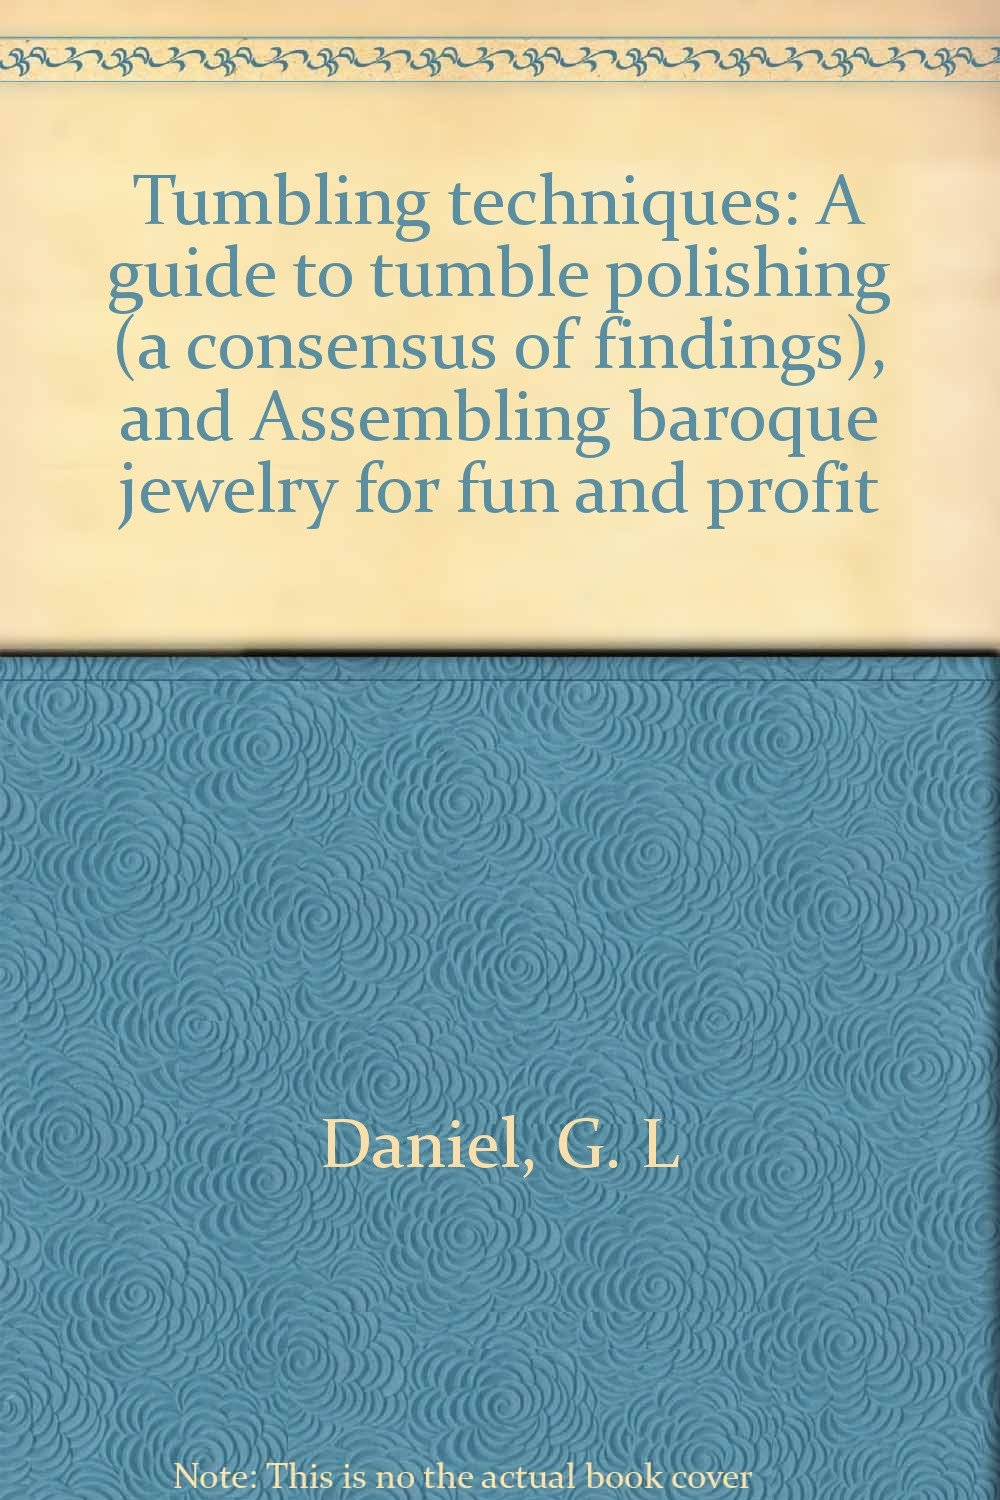 Tumbling techniques: A guide to tumble polishing (a consensus of findings), and Assembling baroque jewelry for fun and profit